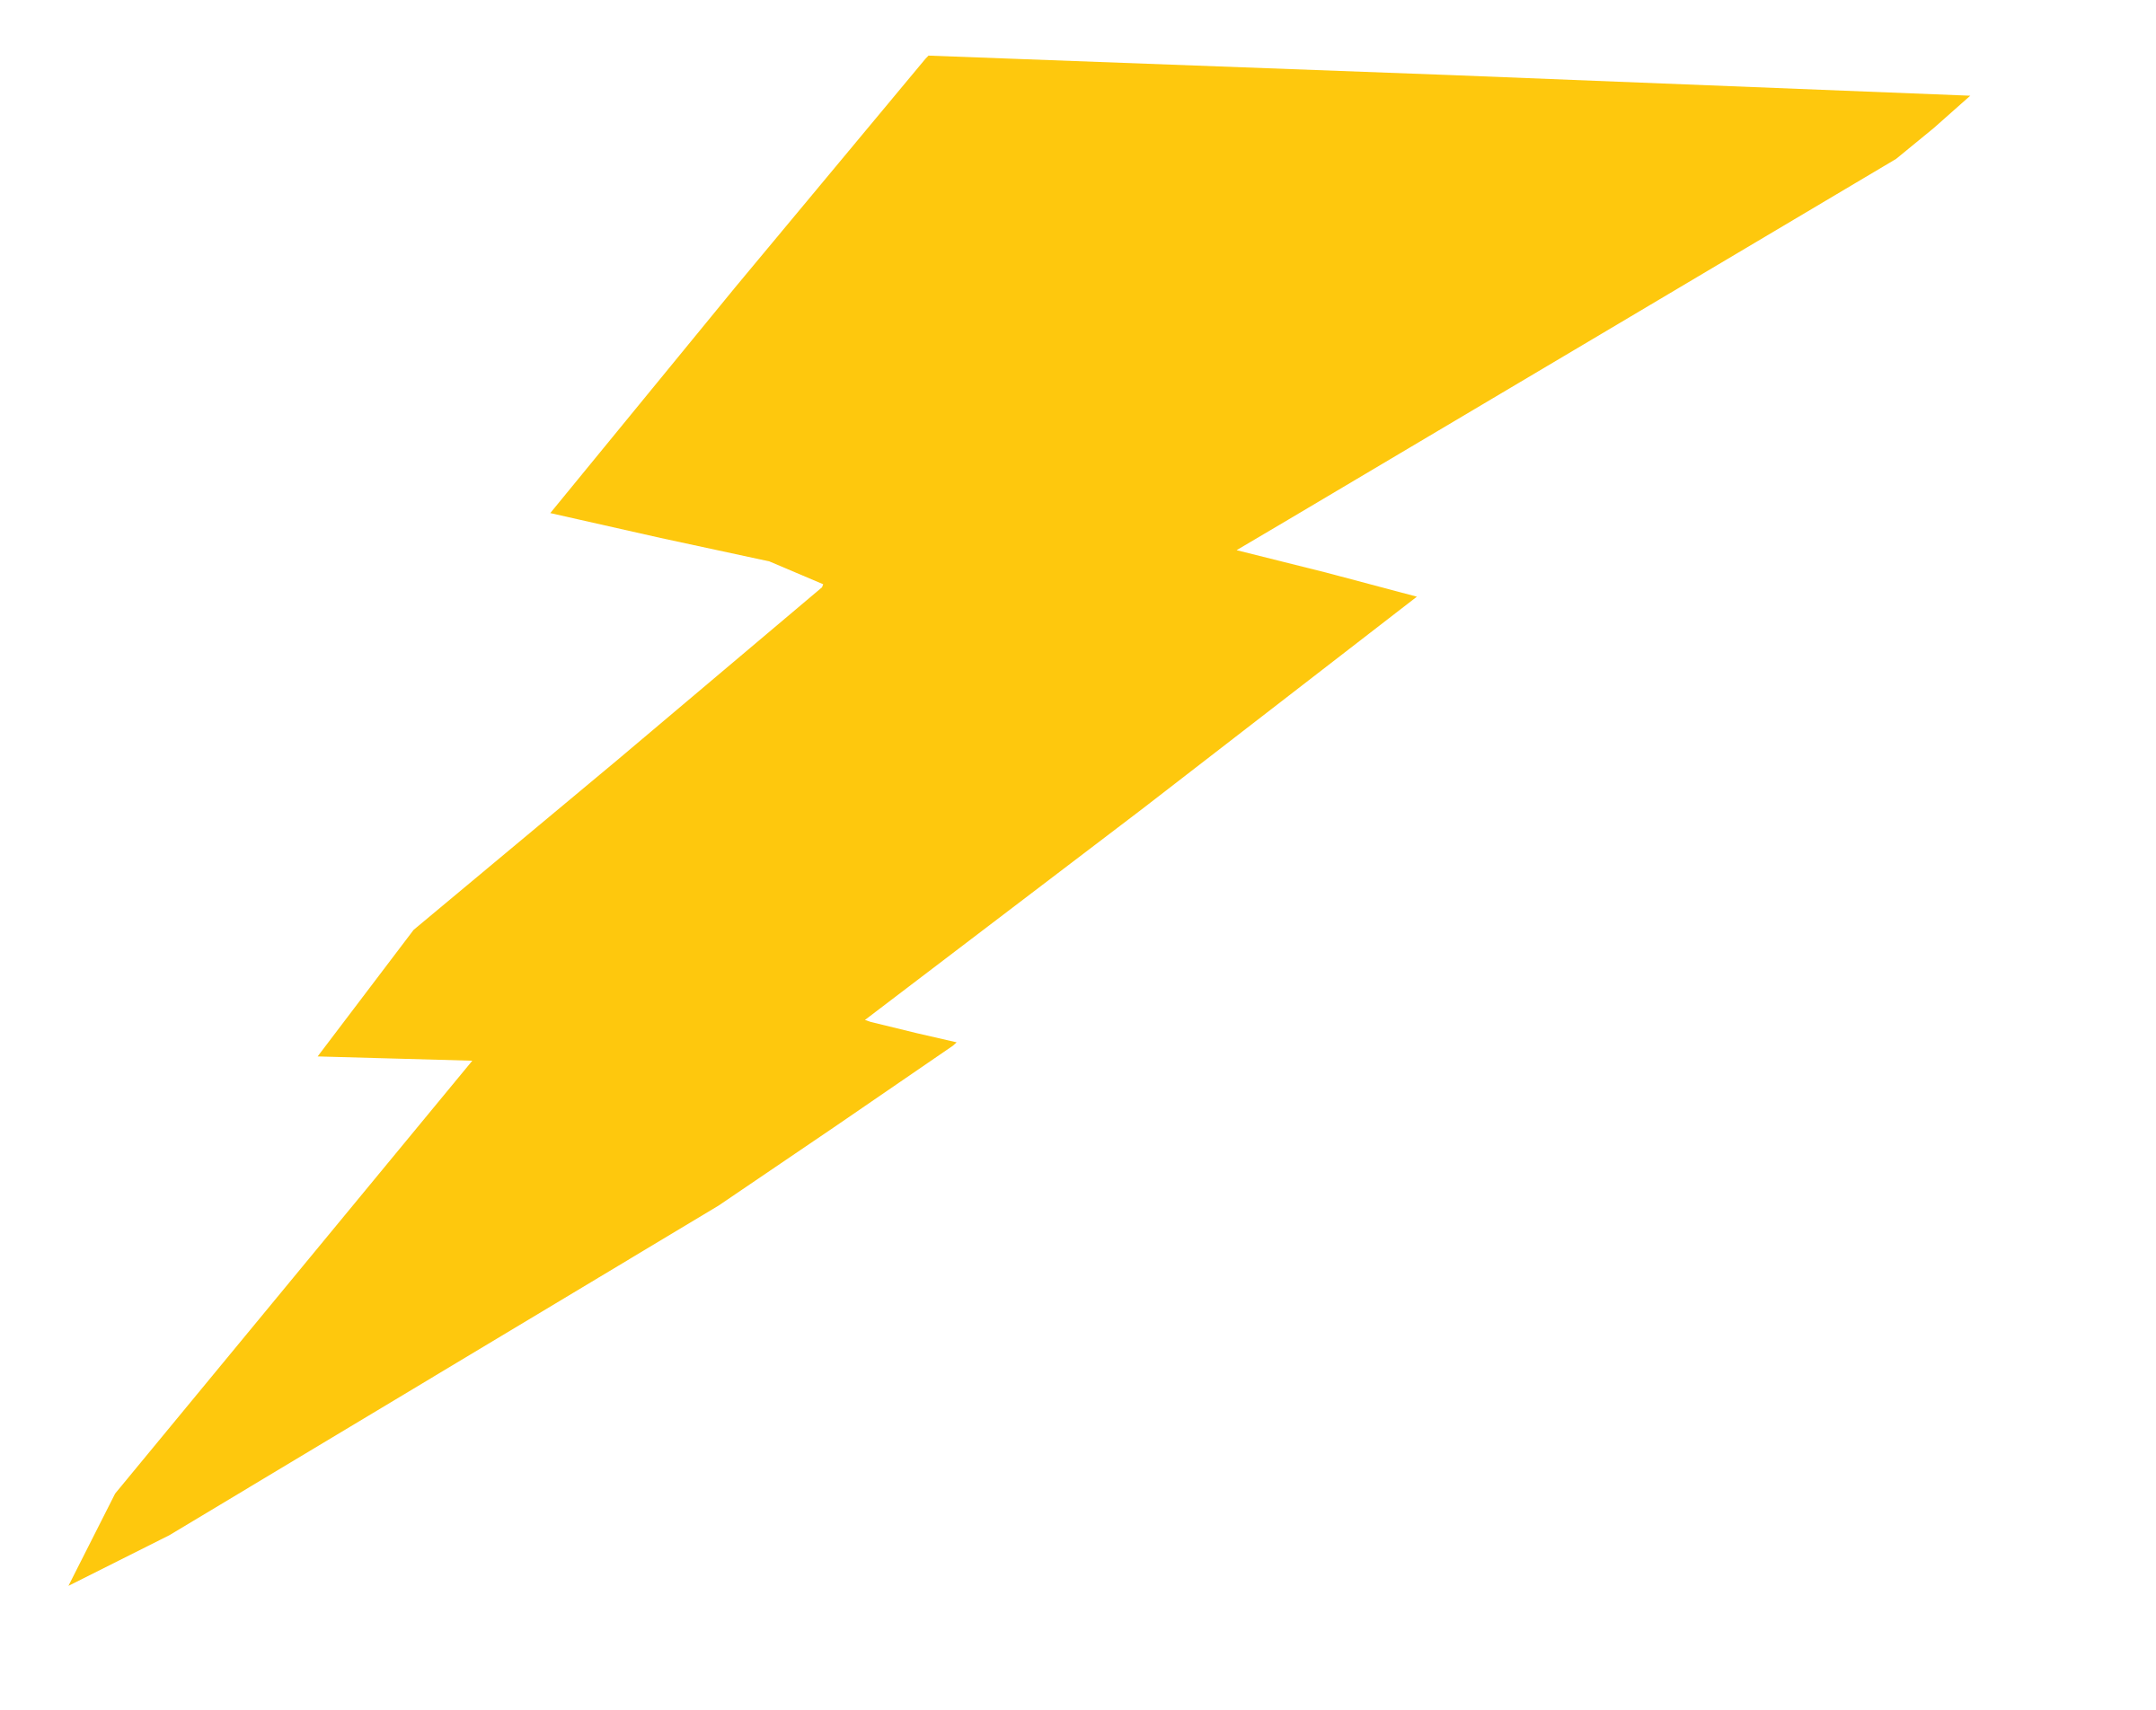 Cartoon lightning png. Bolt refixed icons free